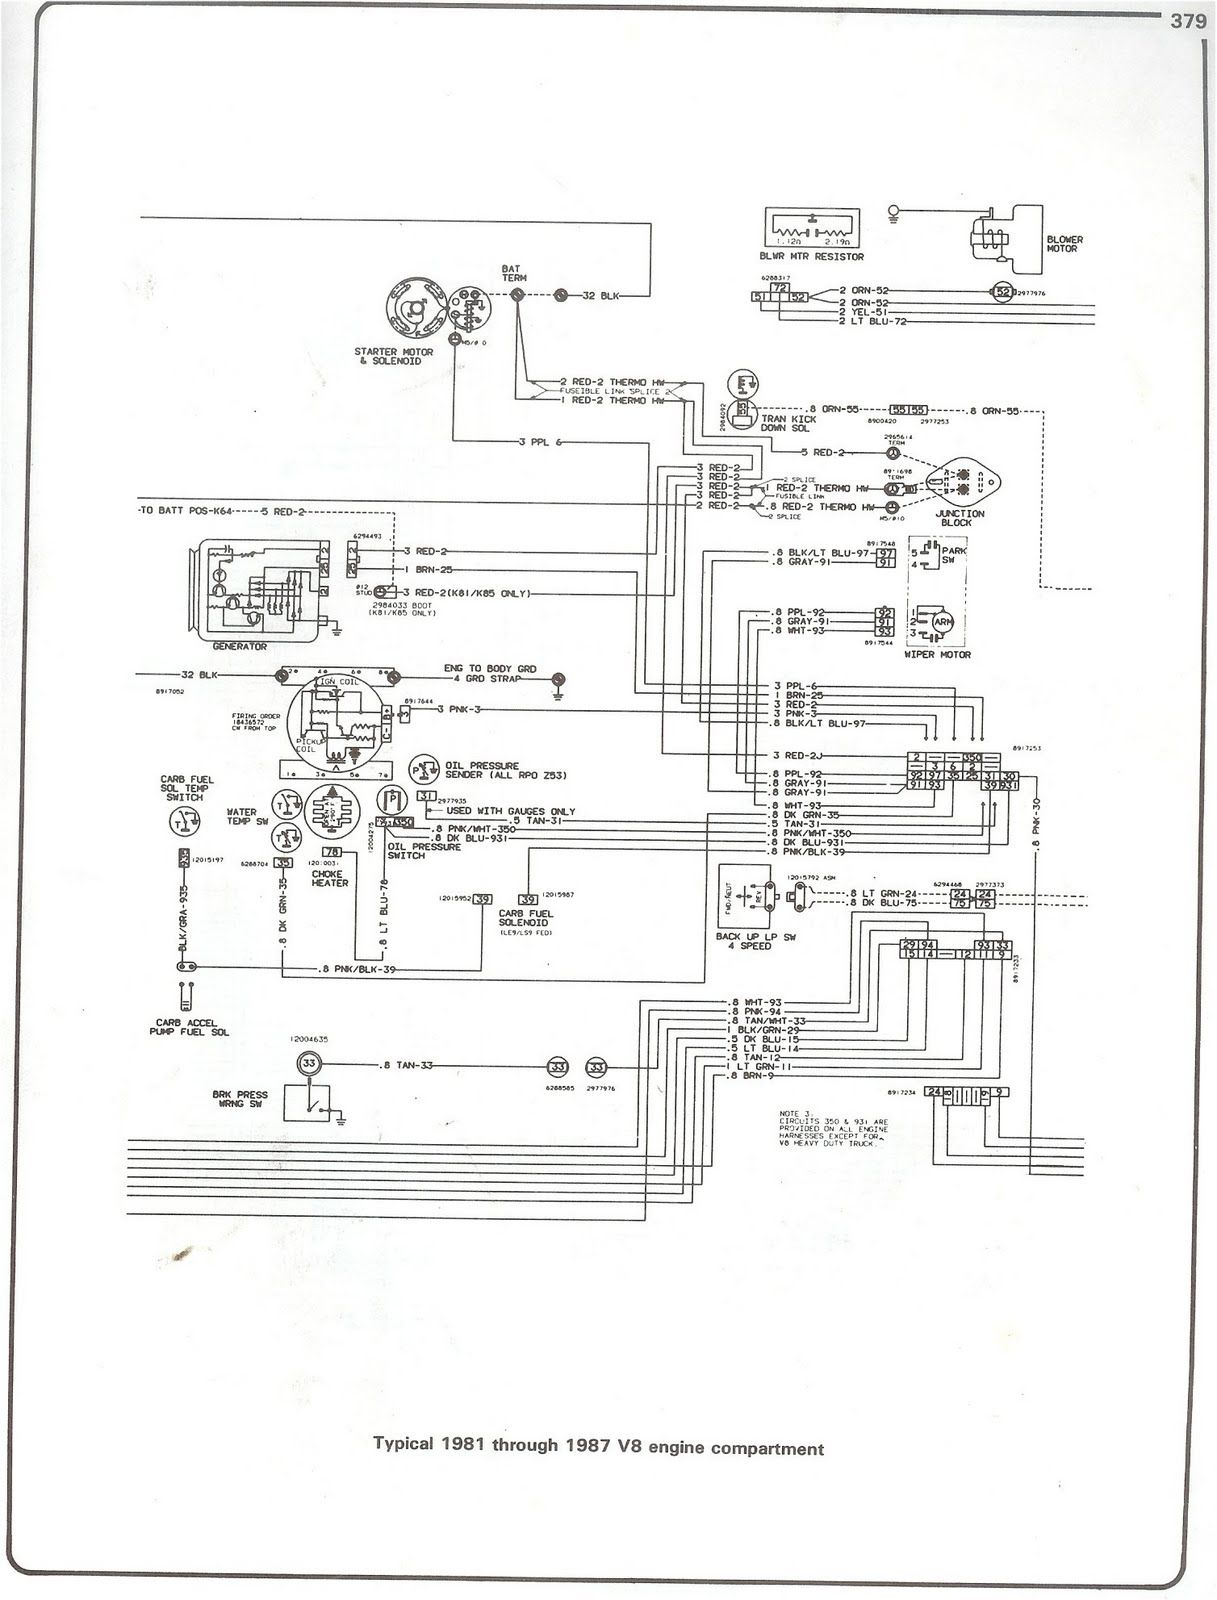 this is engine compartment wiring diagram for 1981 trough 1987 chevrolet v8  truck  description from autowiringdiagram blogspot com